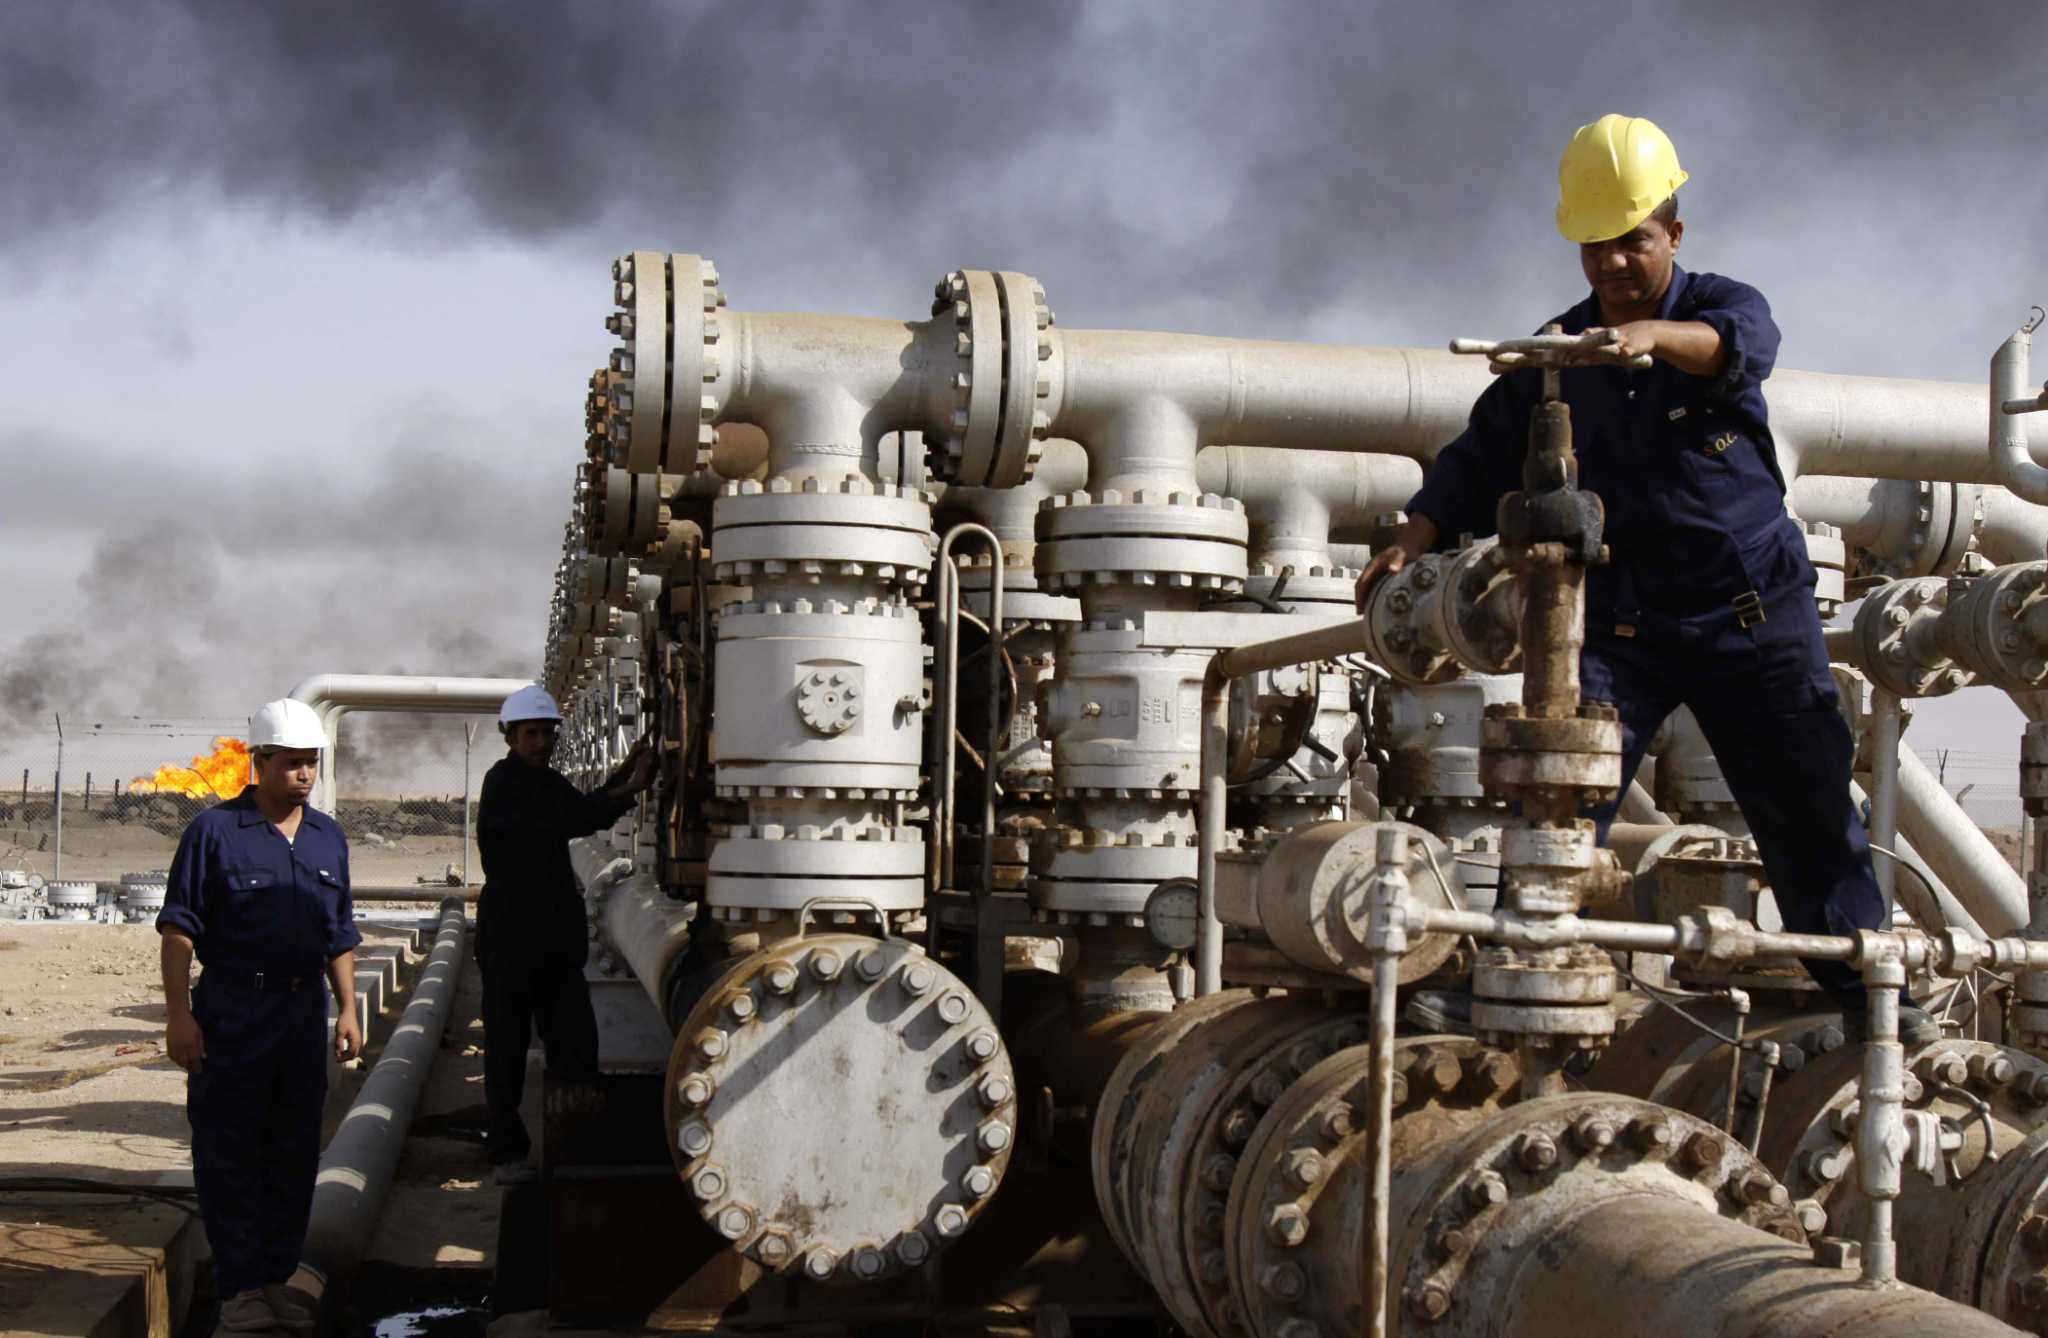 Iraq Oil Supplies Vulnerable as Mideast Tensions Flare, IEA Says